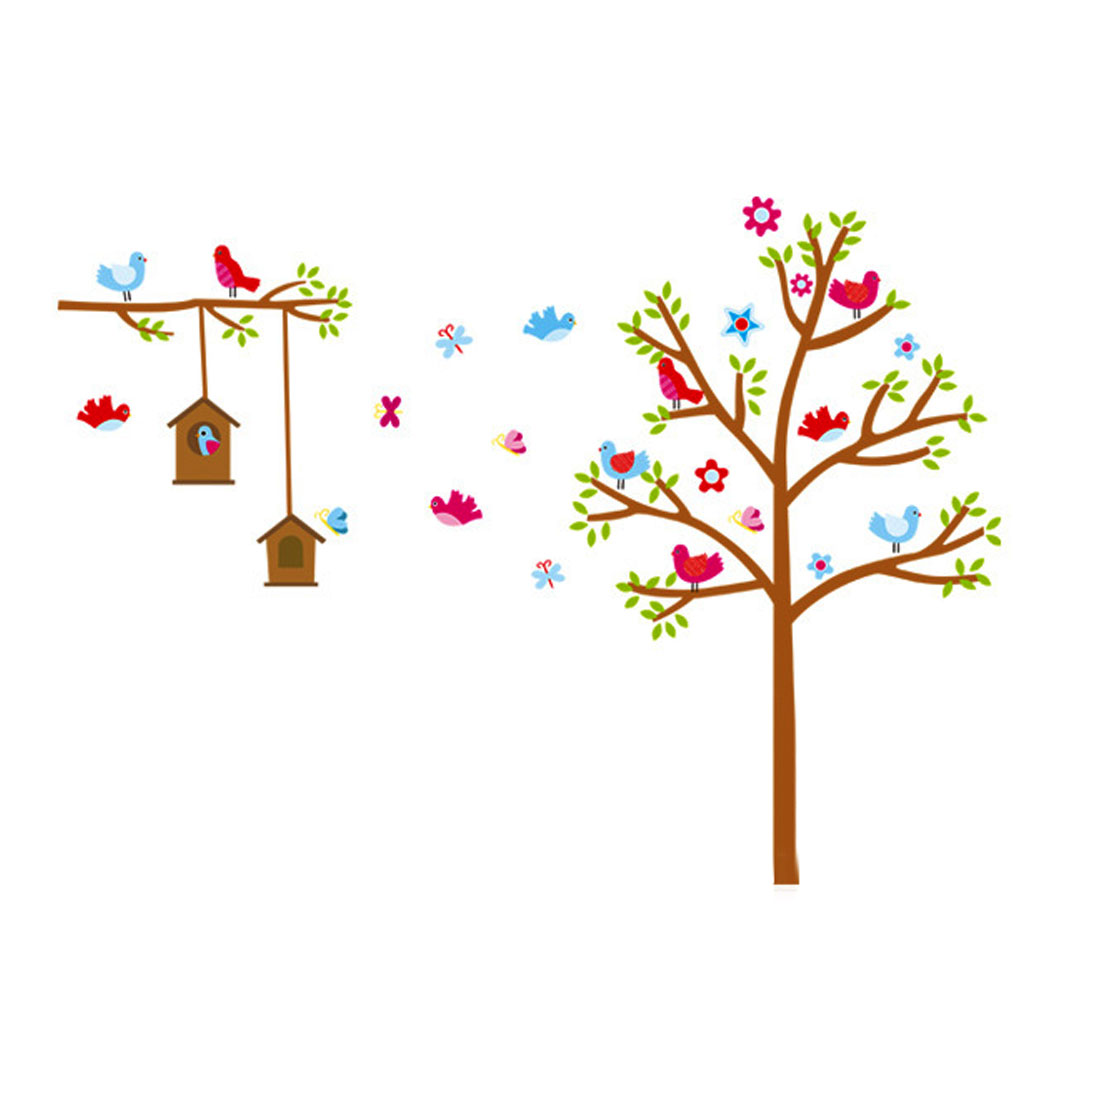 Home Wall Decor Tree House Bird Wall Art Wall Sticker Colorful 900mm x 610mm